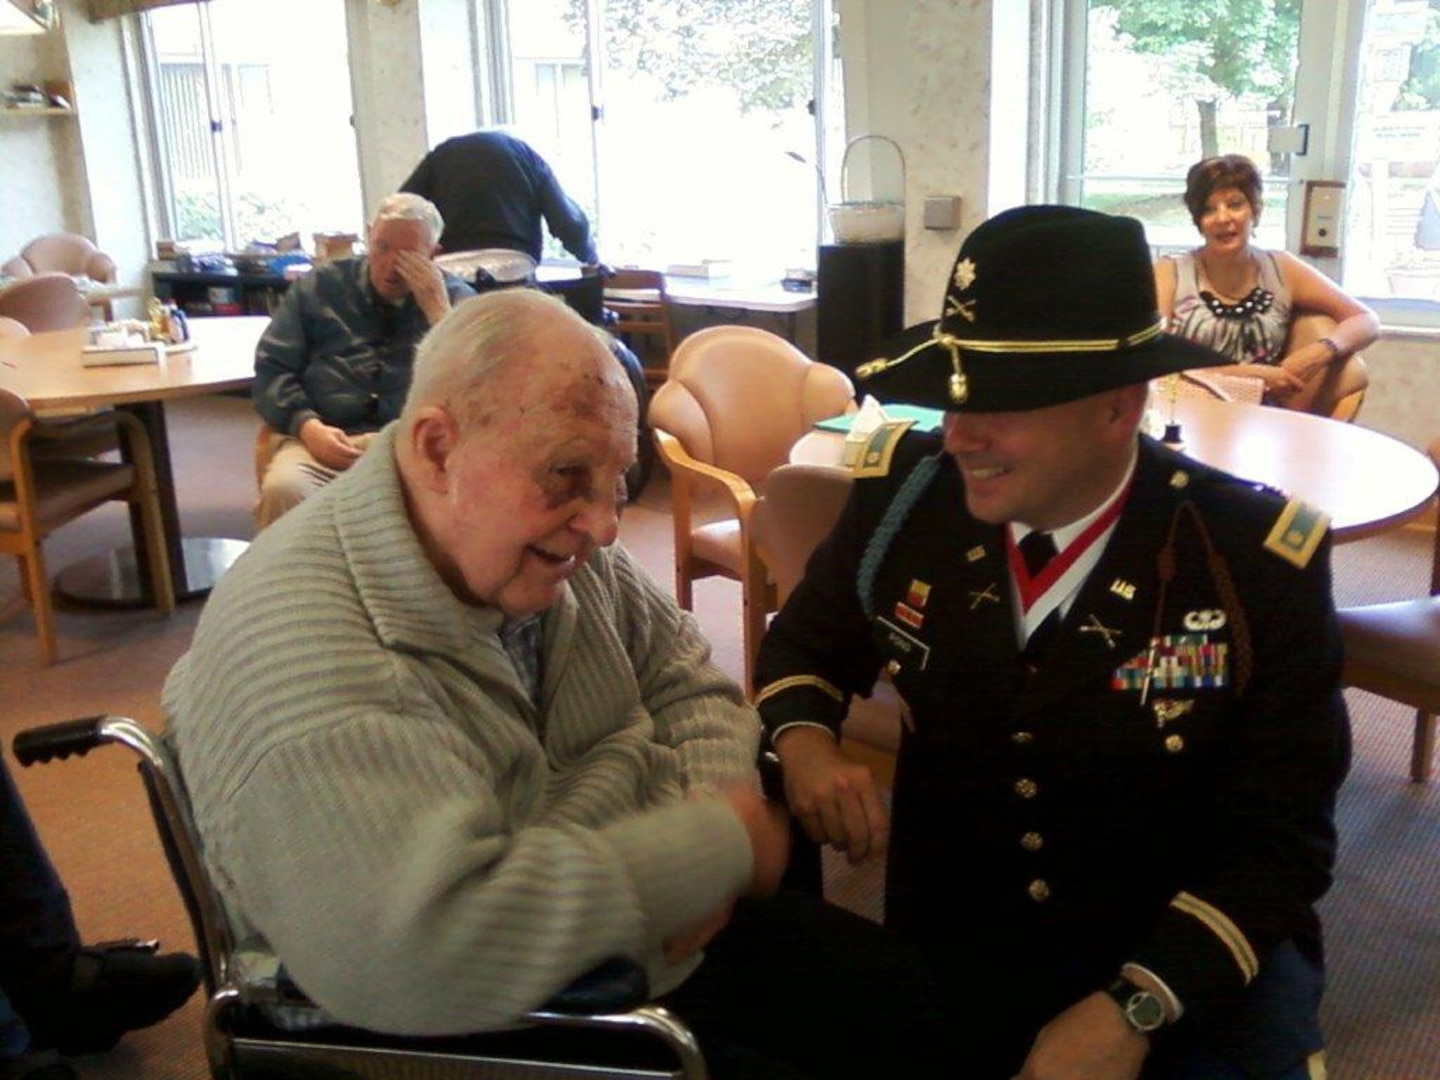 """1st Lt. Benjamin Morin, the first U.S. tank commander to engage enemy forces in World War II and the last surviving officer of the National Guard's famed 192nd Tank Battalion, has died at a retirement home for Catholic priests in Michigan. """"Here's a gentleman that endured unspeakable horrors at the hands of others, but he wouldn't speak a bad word about anyone,"""" one Soldier said. """"The most he would say about his Japanese captors was 'They were not the nicest people.'"""""""